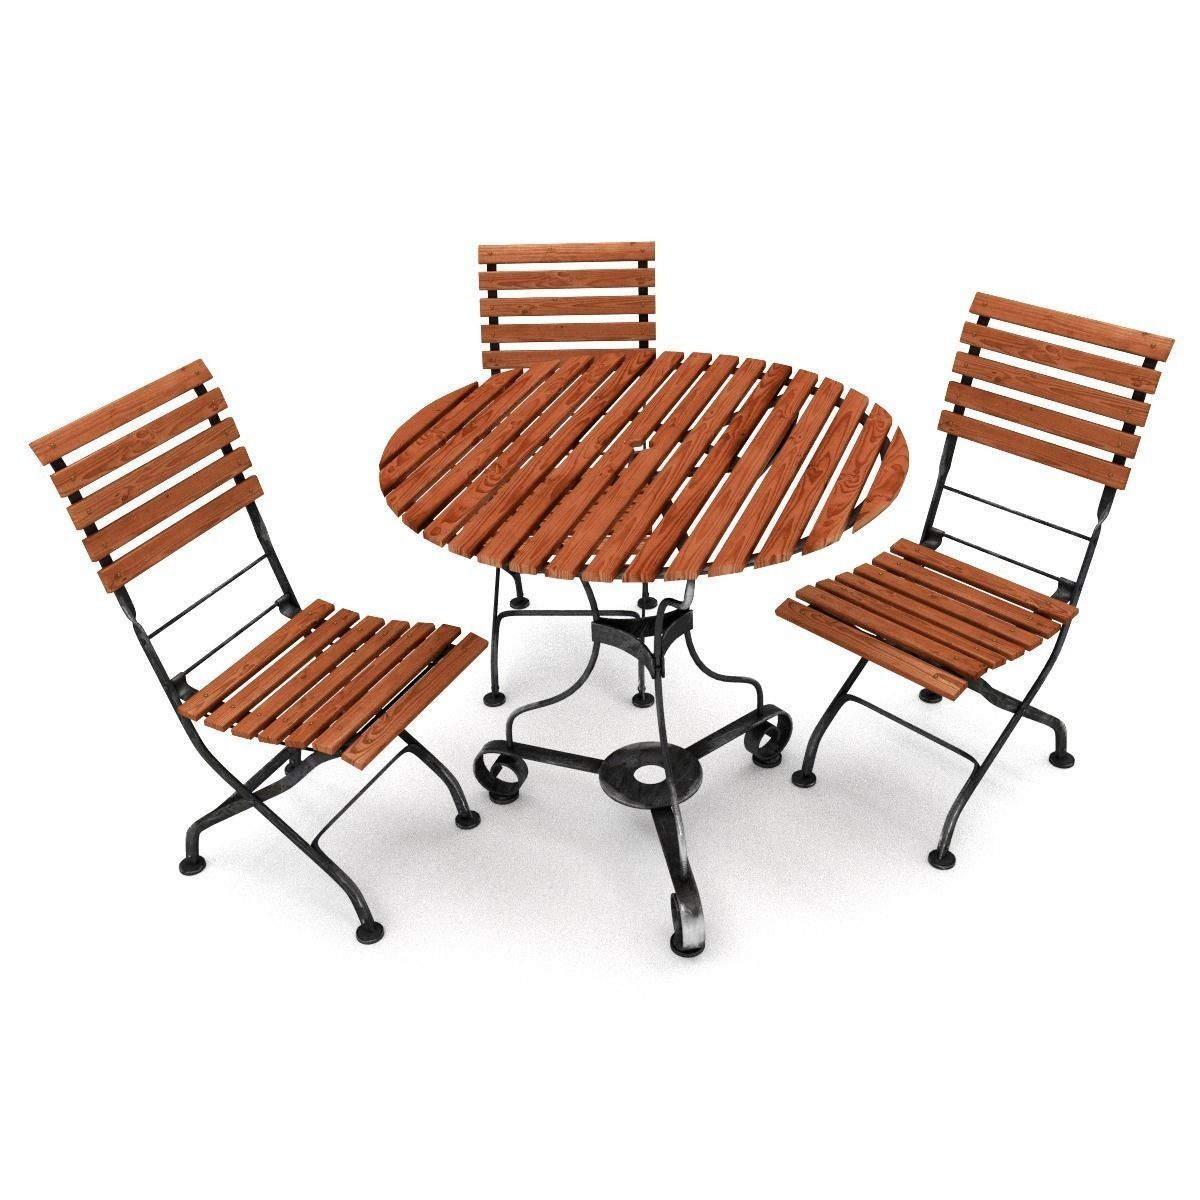 garden furniture set 3d model obj fbx blend 1 - Garden Furniture 3d